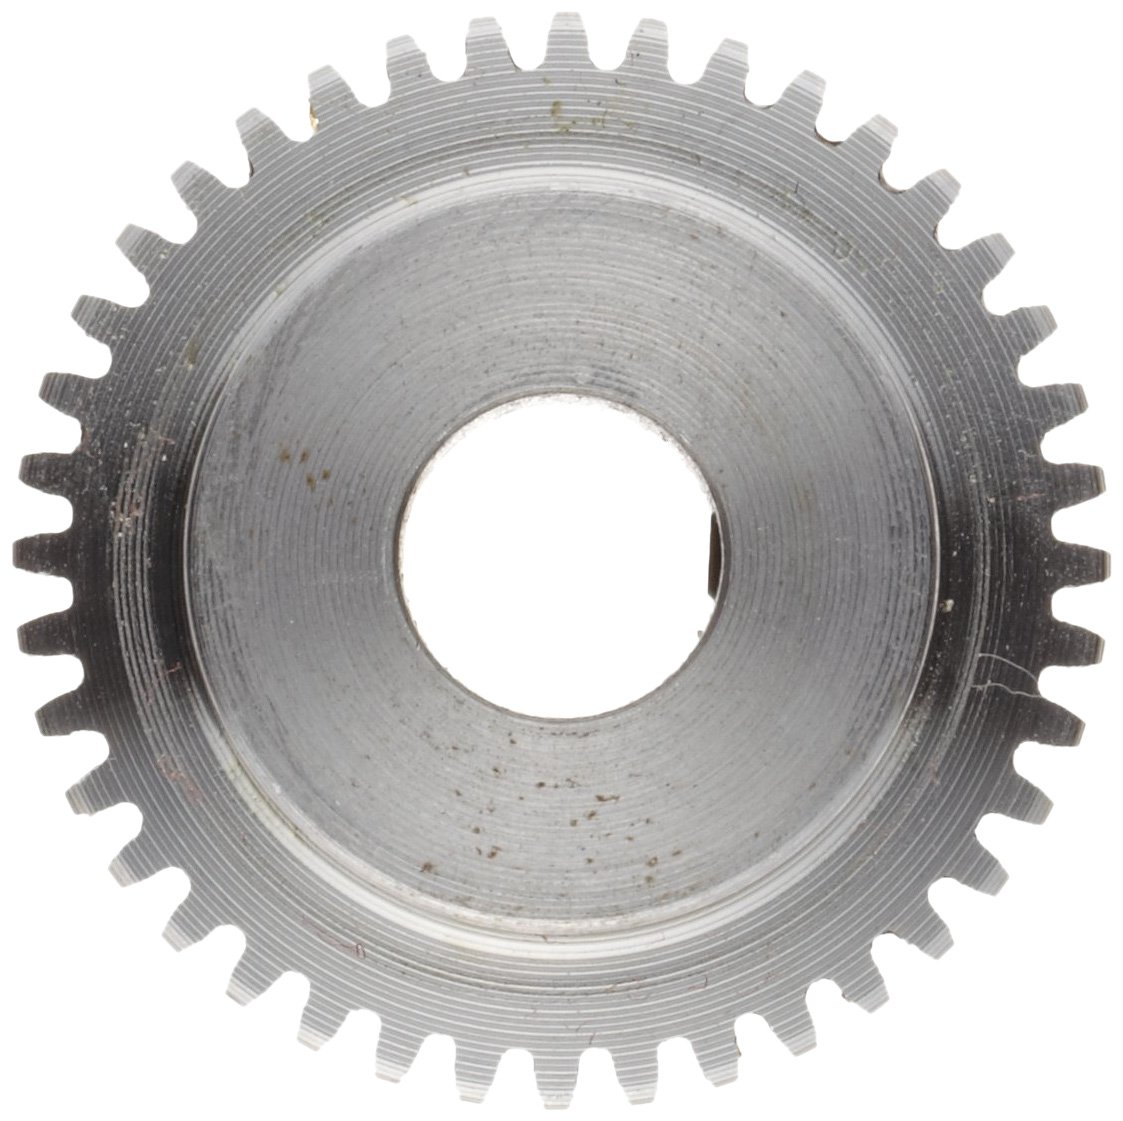 Boston Gear H3220 Spur Gear, 14.5 Pressure Angle, Steel, Inch, 32 Pitch, 0.250'' Bore, 0.687'' OD, 0.188'' Face Width, 20 Teeth